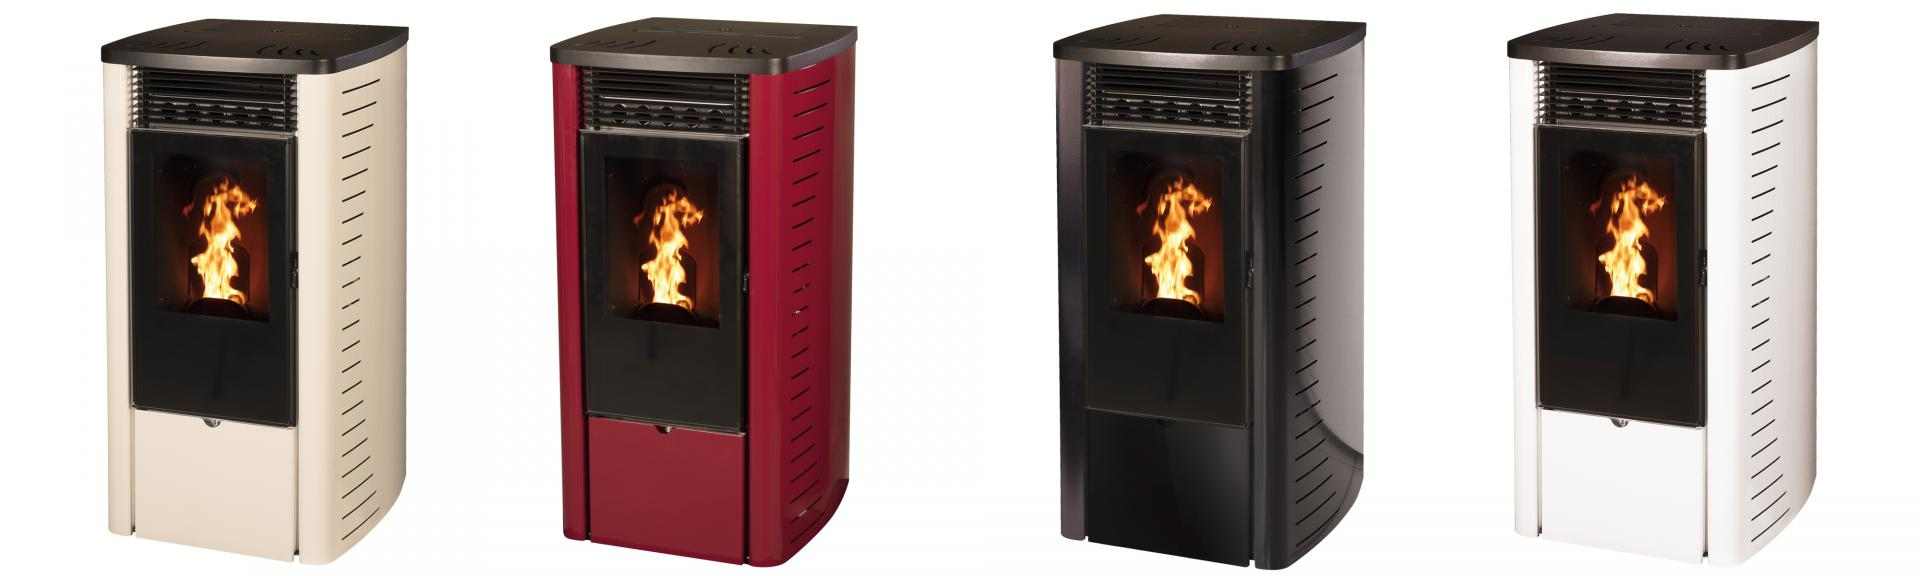 Couleur mode le stove industry pgv